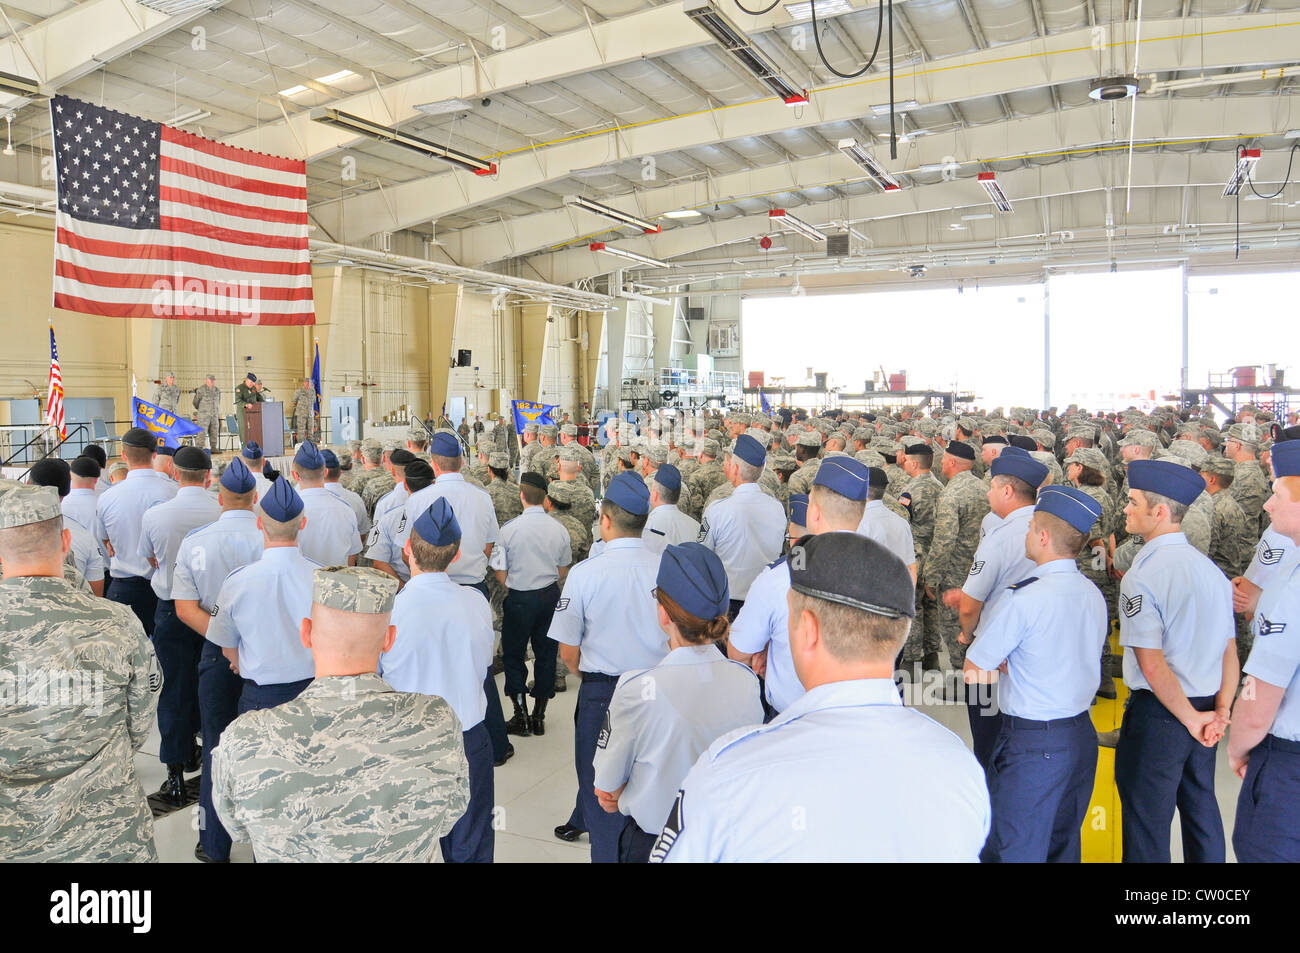 Colonel William Robertson addresses the wing at a Commanders Call ceremony at the 182d Airlift Wing, Peoria, Illlinois - Stock Image